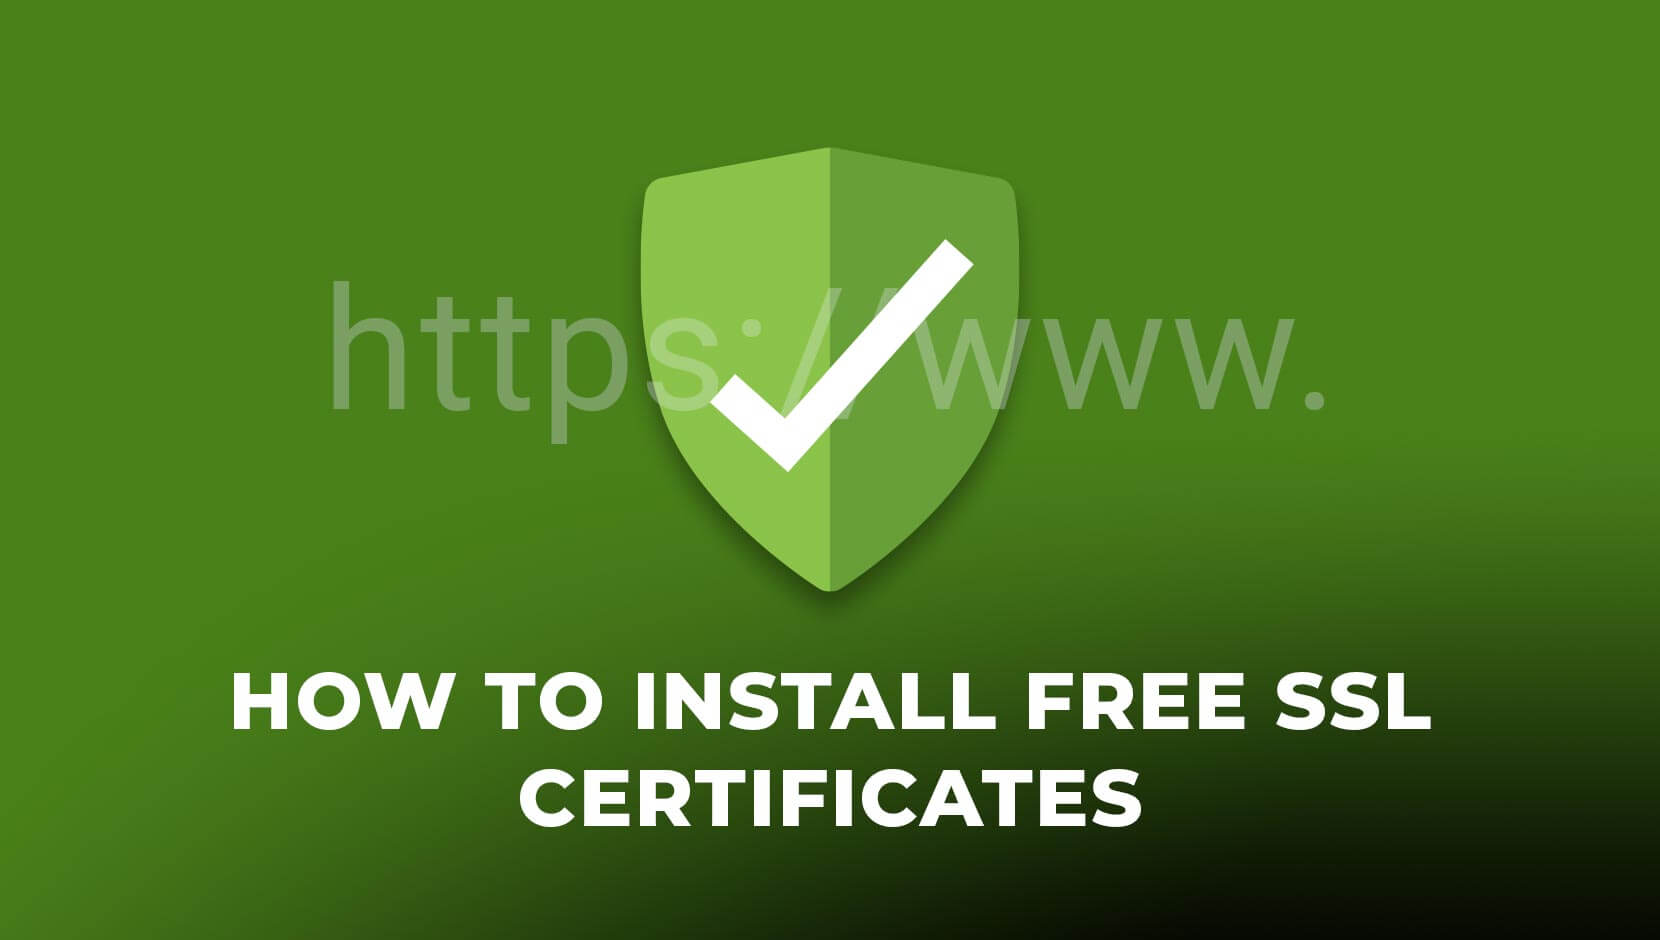 How To Install Free SSL Certificates